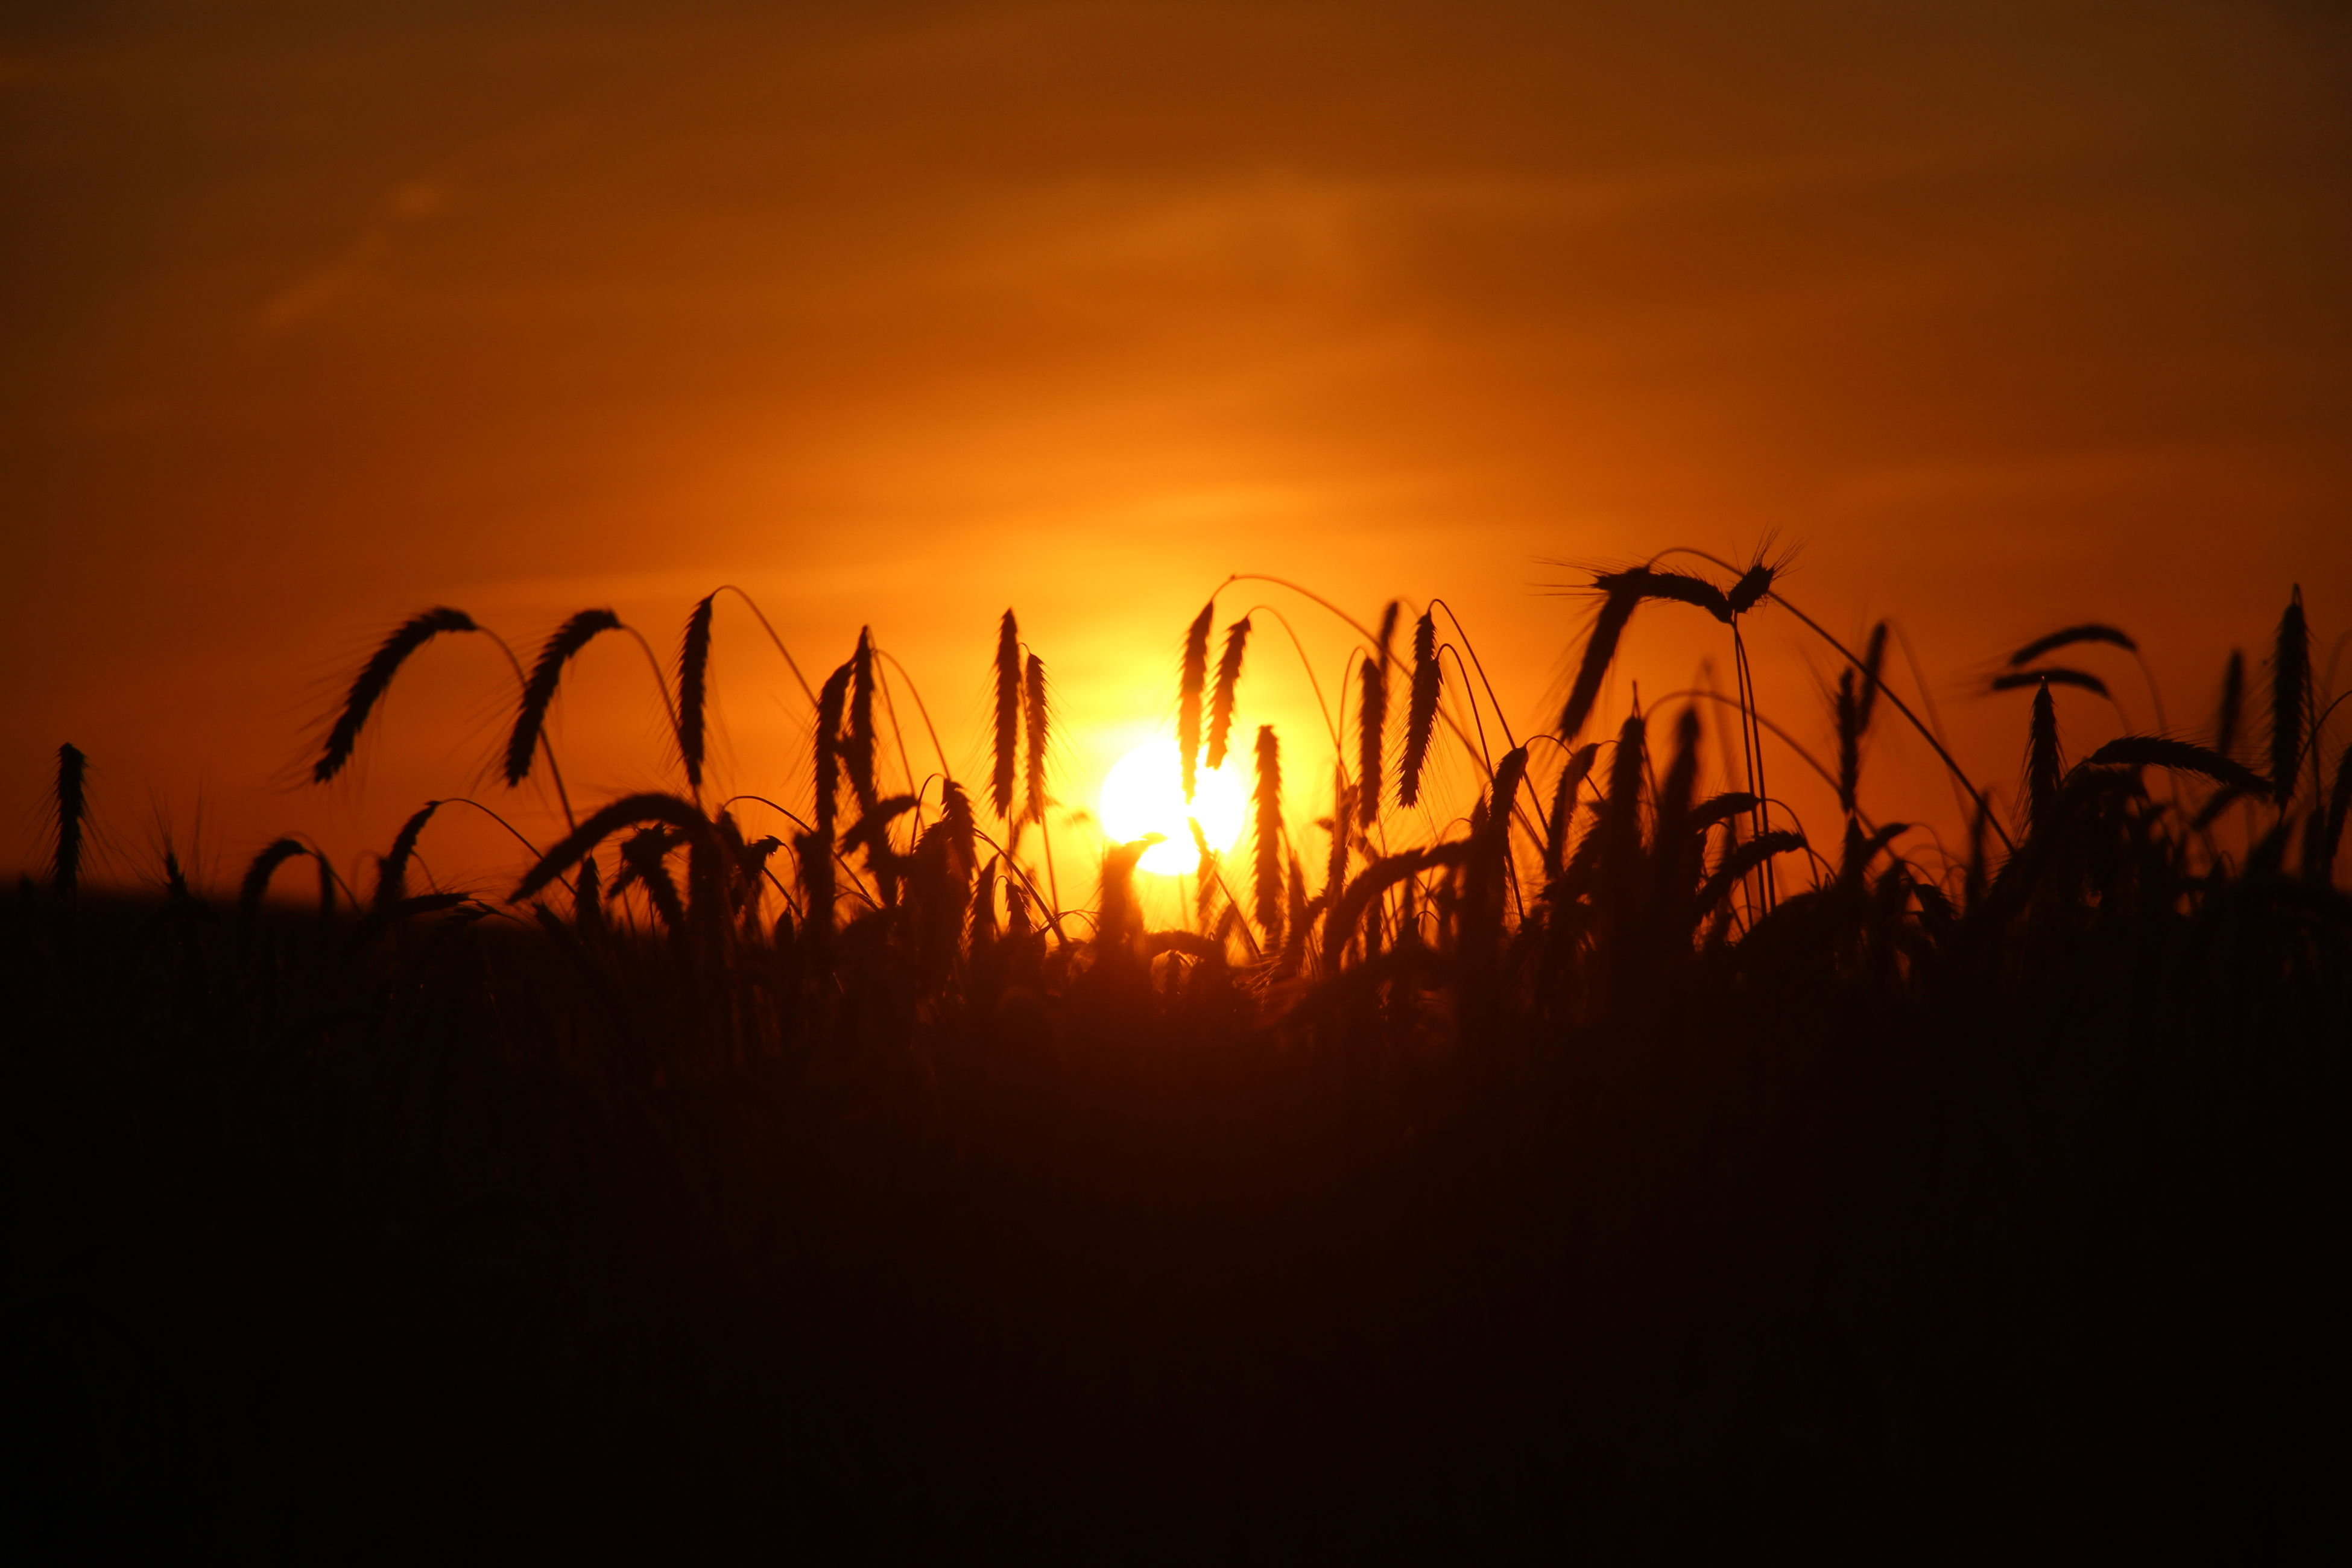 sunset, silhouette, sun, orange color, sky, plant, tranquility, tranquil scene, beauty in nature, nature, scenics, growth, idyllic, field, sunlight, back lit, outdoors, no people, outline, landscape